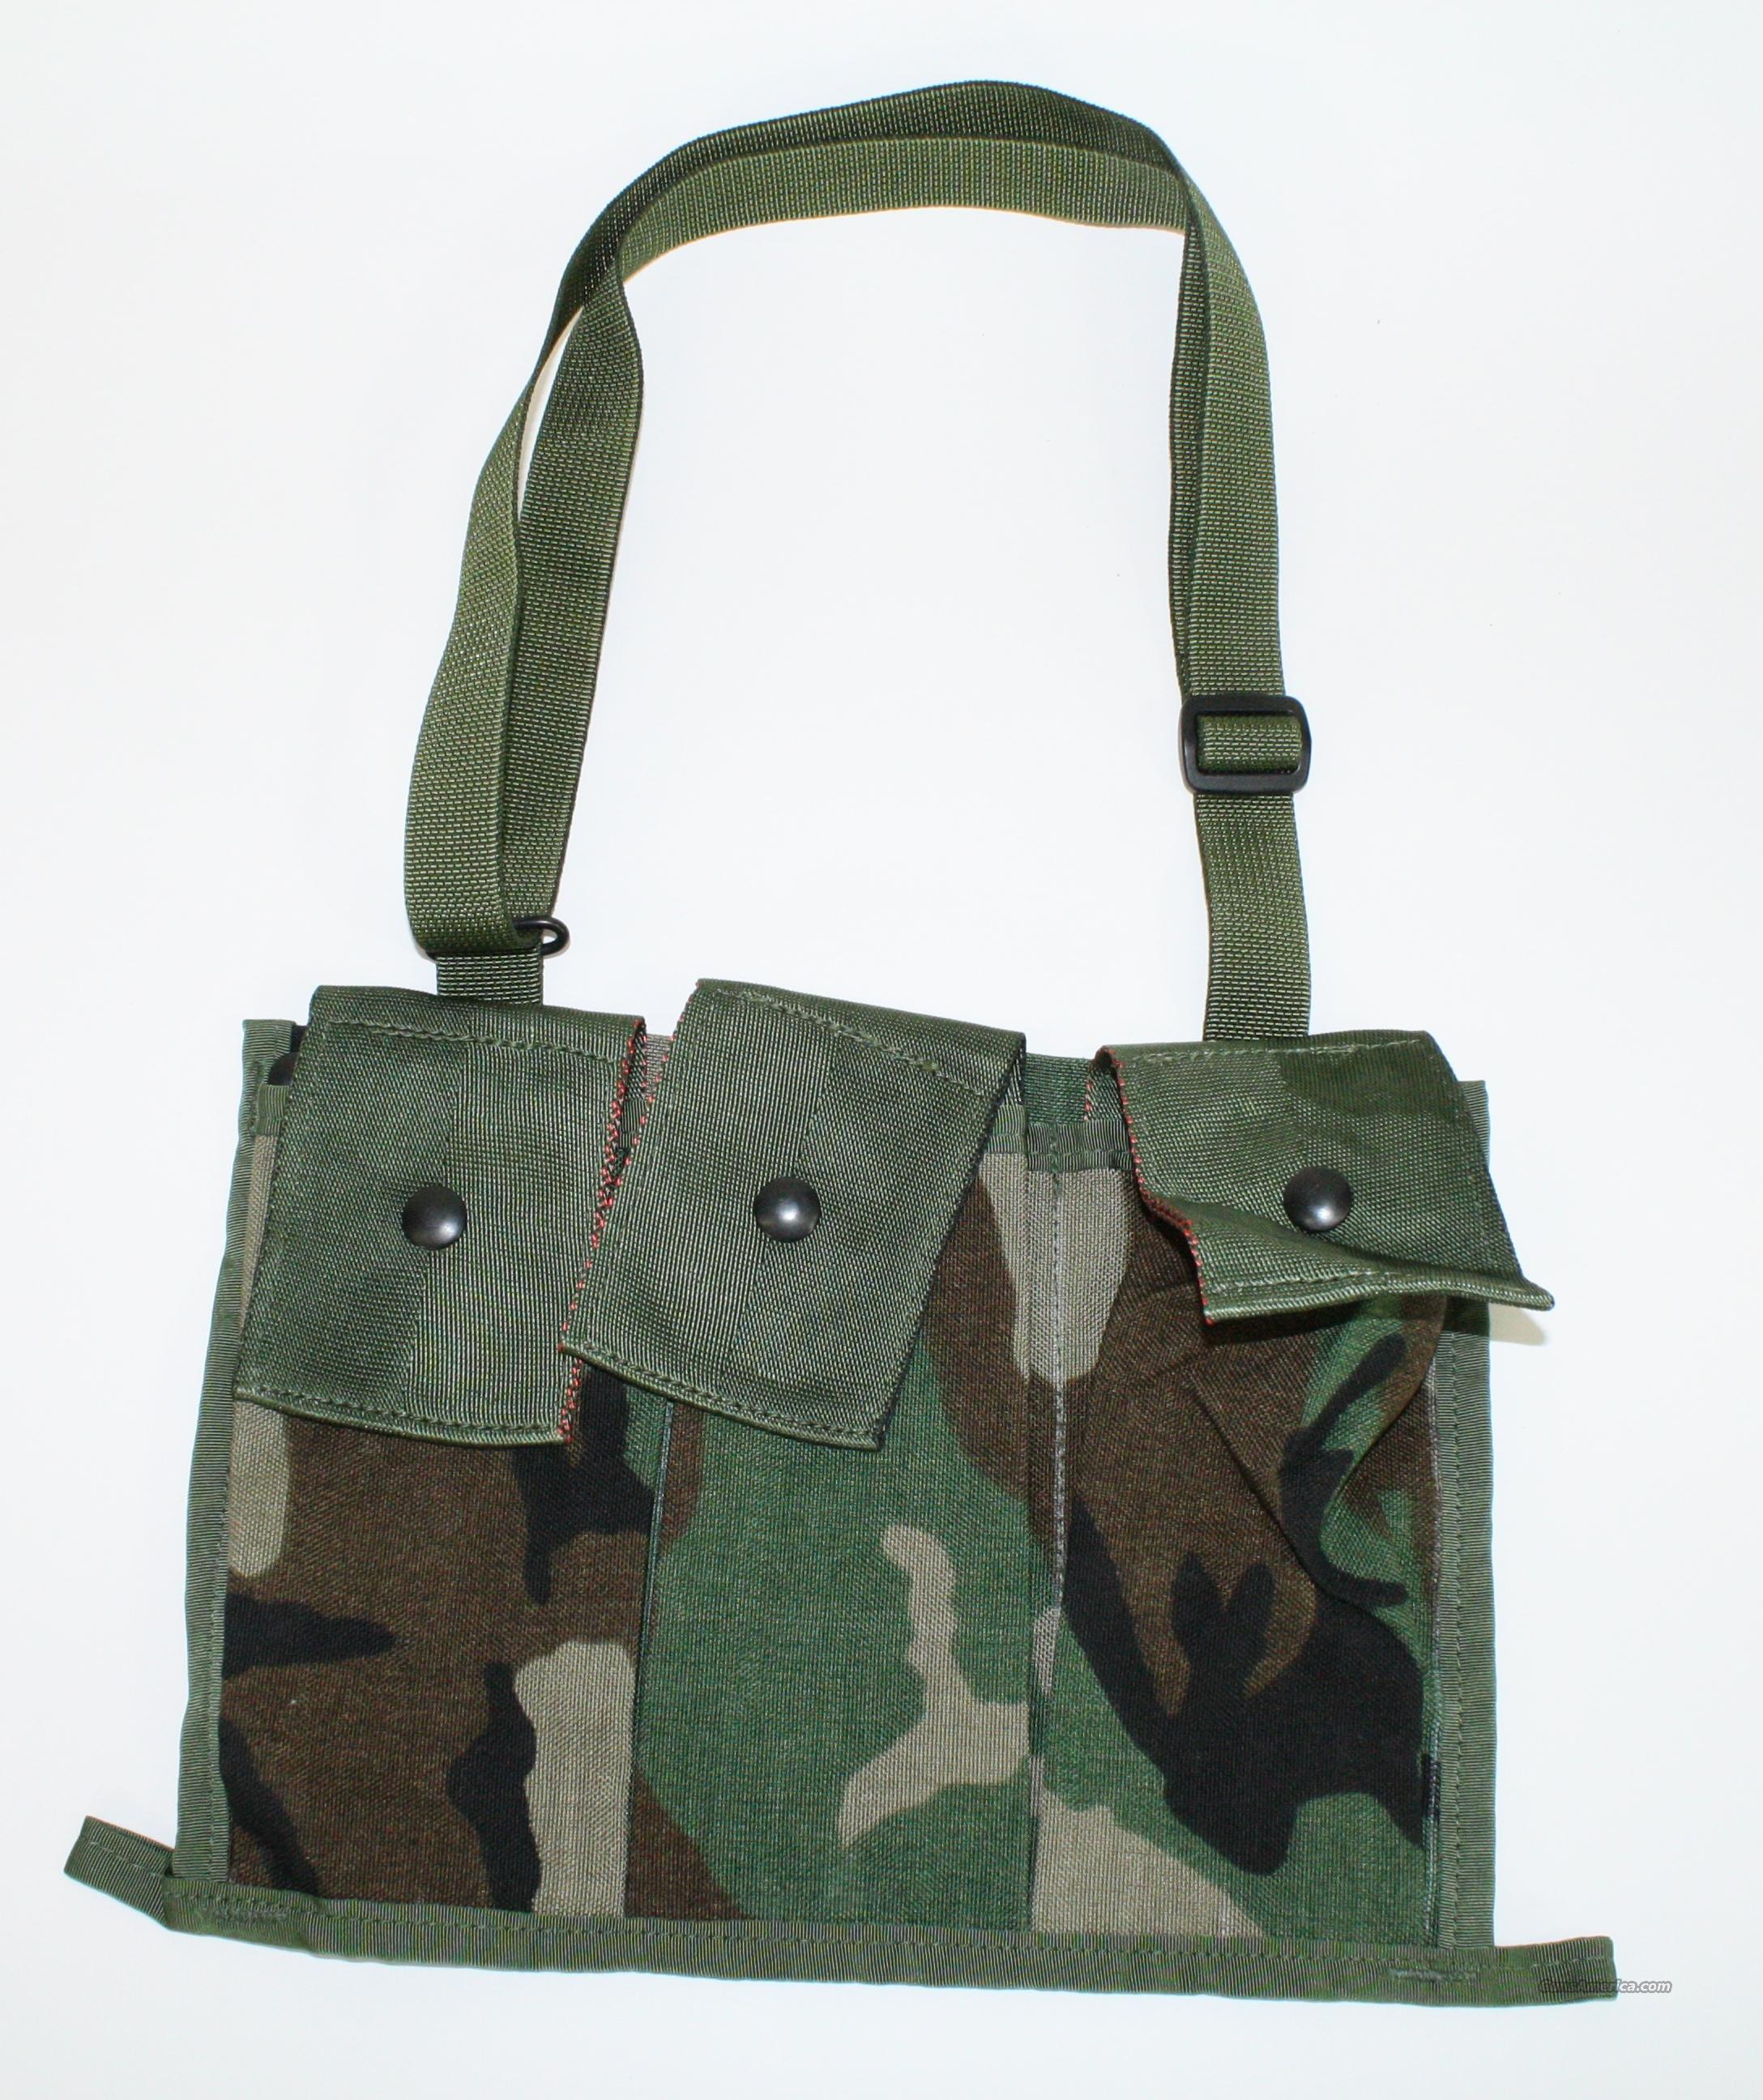 5 Each Woodland Camo Bandolier Magazine Pouch  Non-Guns > Tactical Equipment/Vests